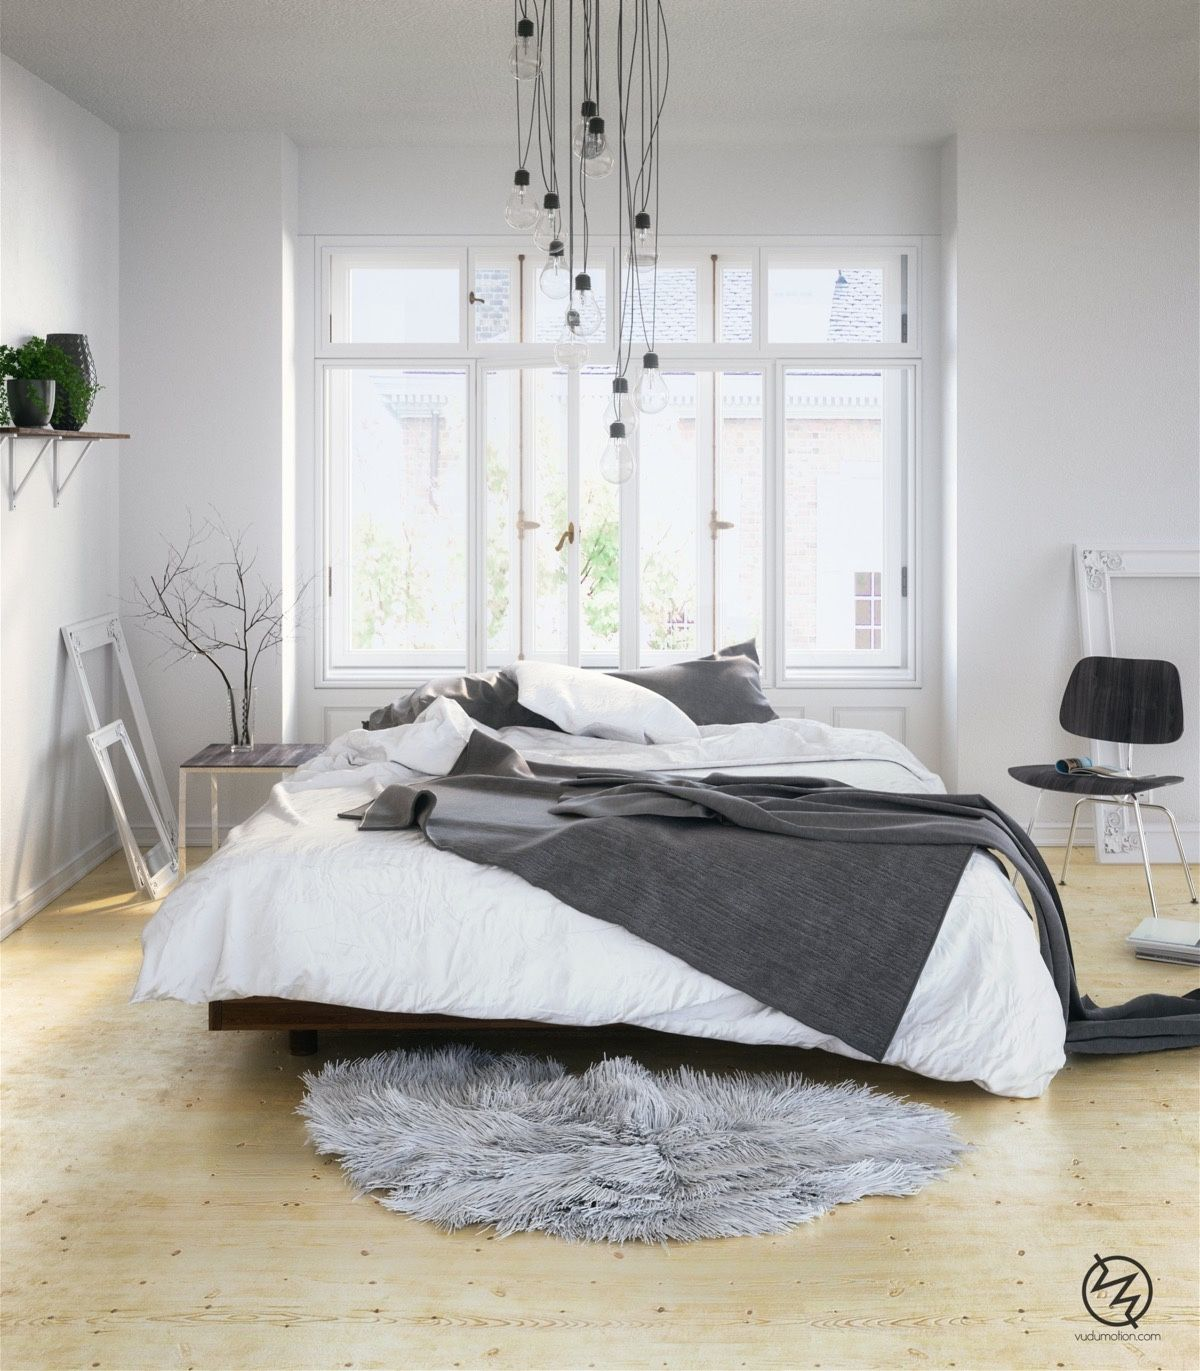 Home Designing — Scandinavian Bedrooms: Ideas And Inspiration ...